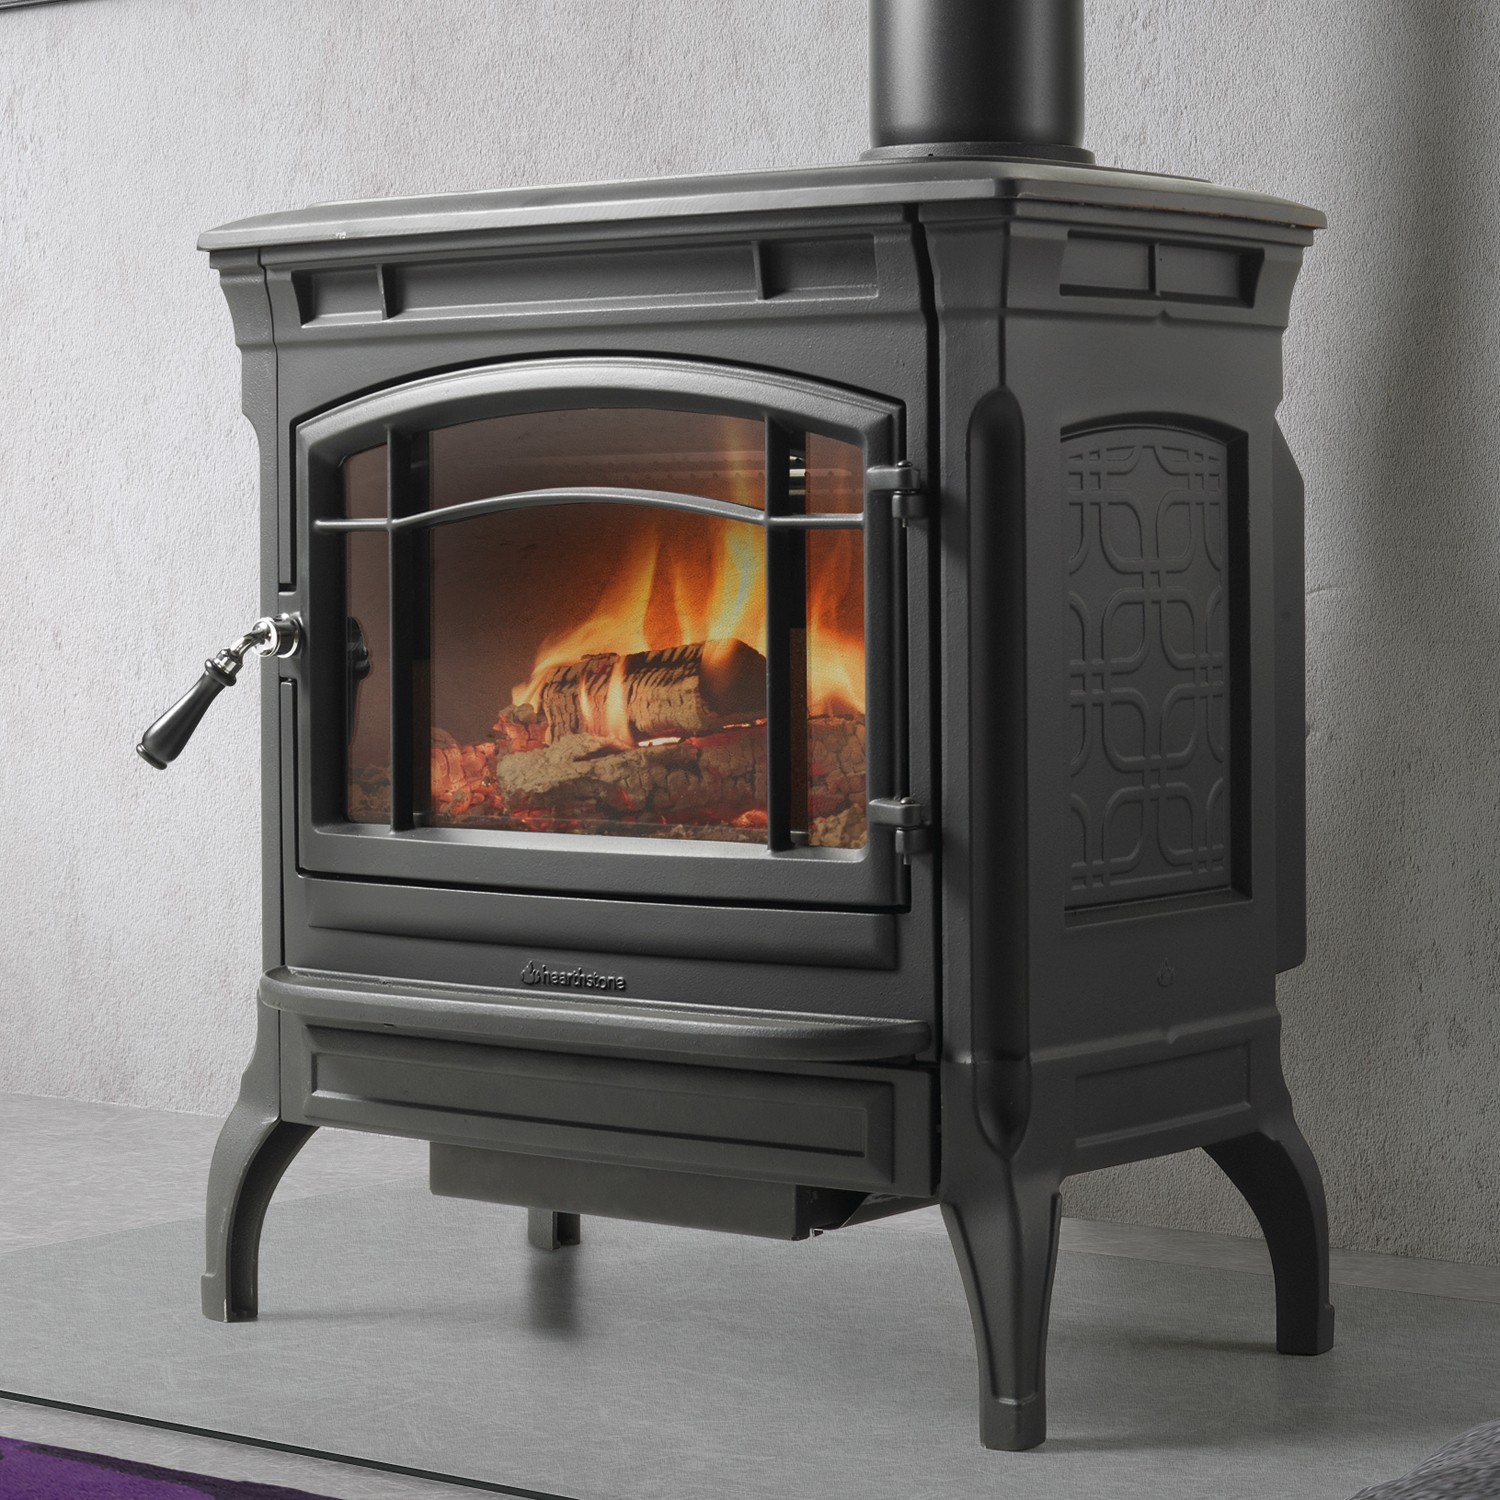 Hearthstone Shelburne wood stove is a cast-iron attractive mid-size performer.  Often competes with the Jotul Castine.  Soapstone lined.